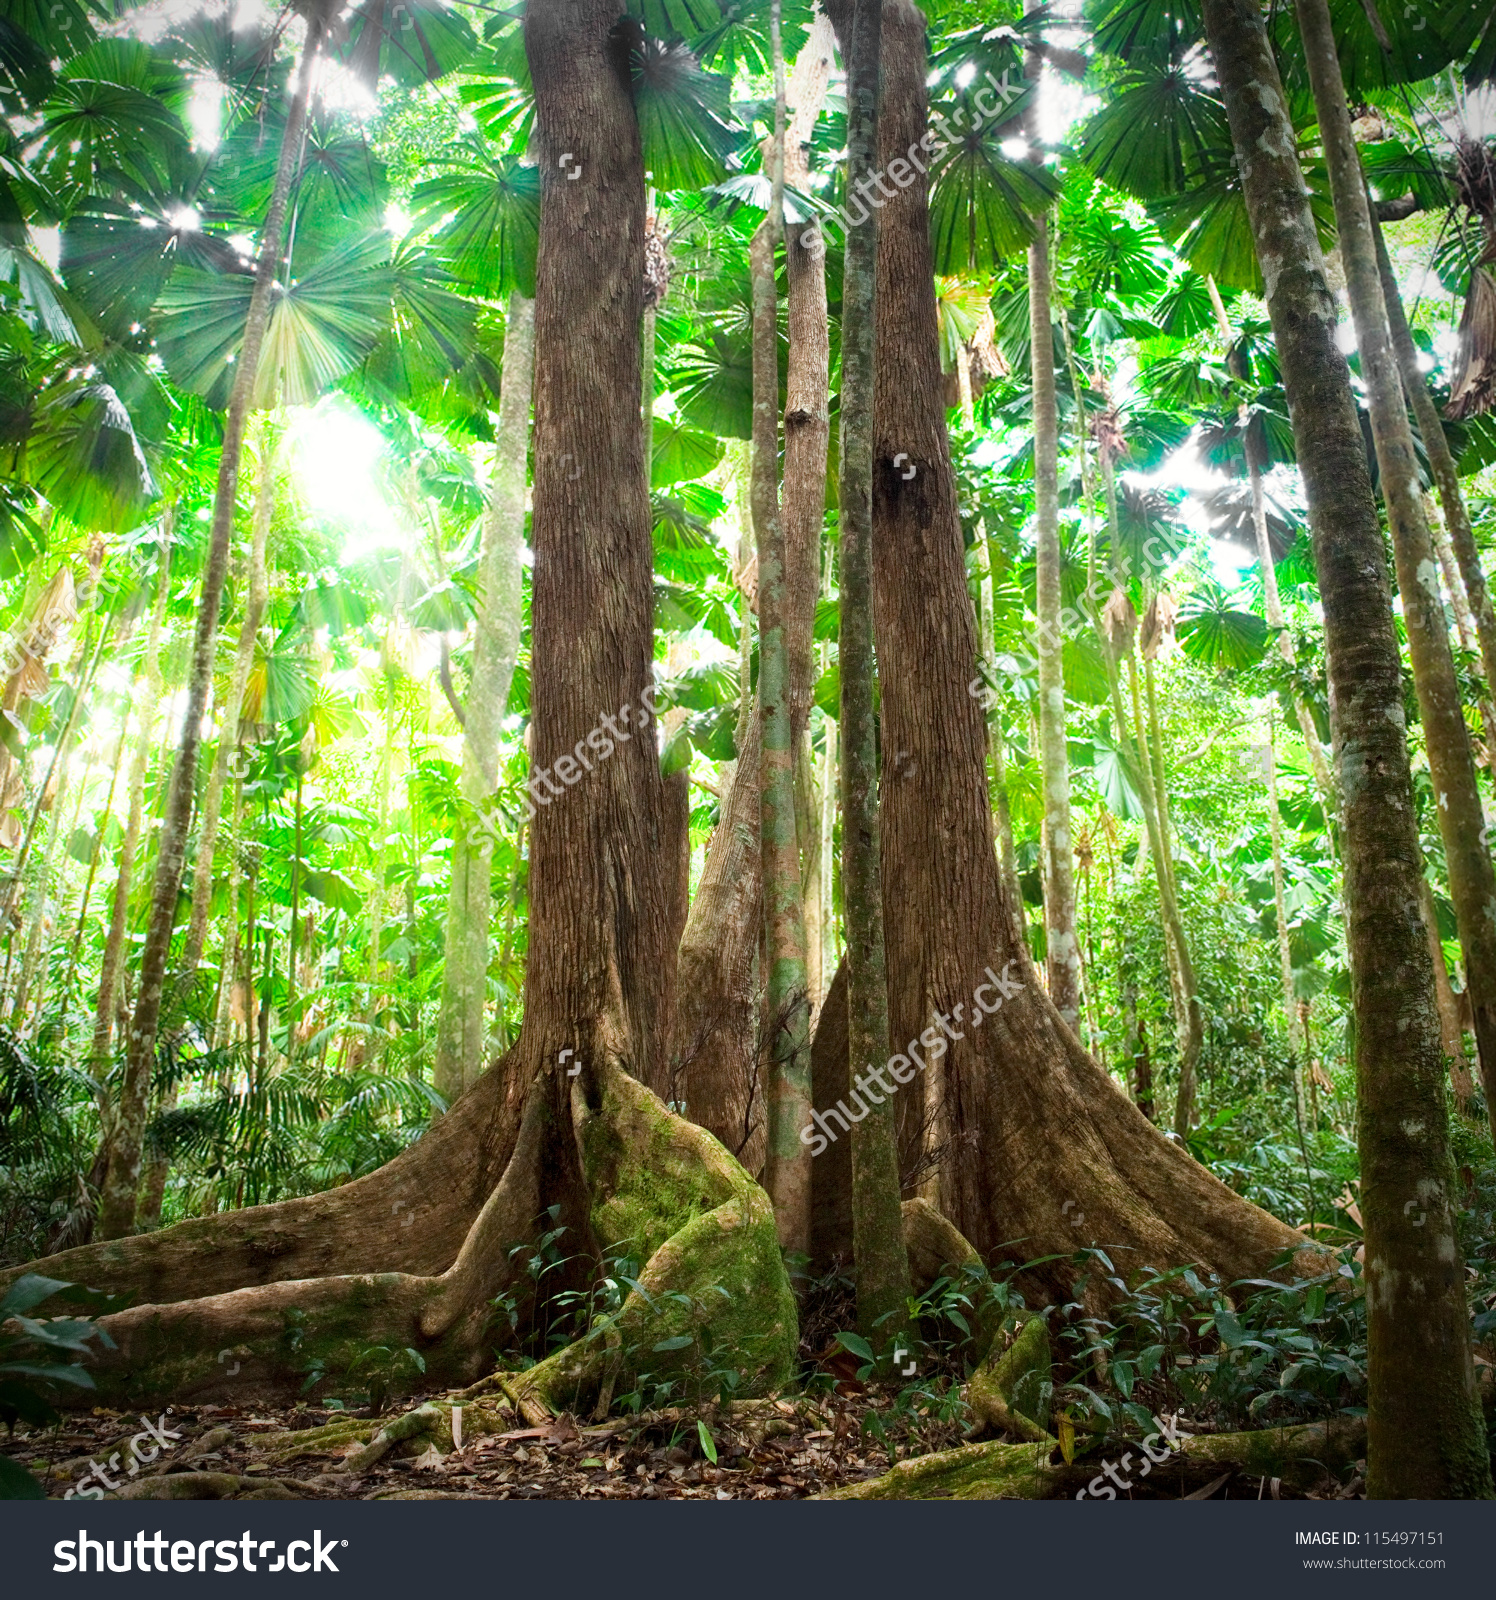 Daintree Rainforest clipart #1, Download drawings